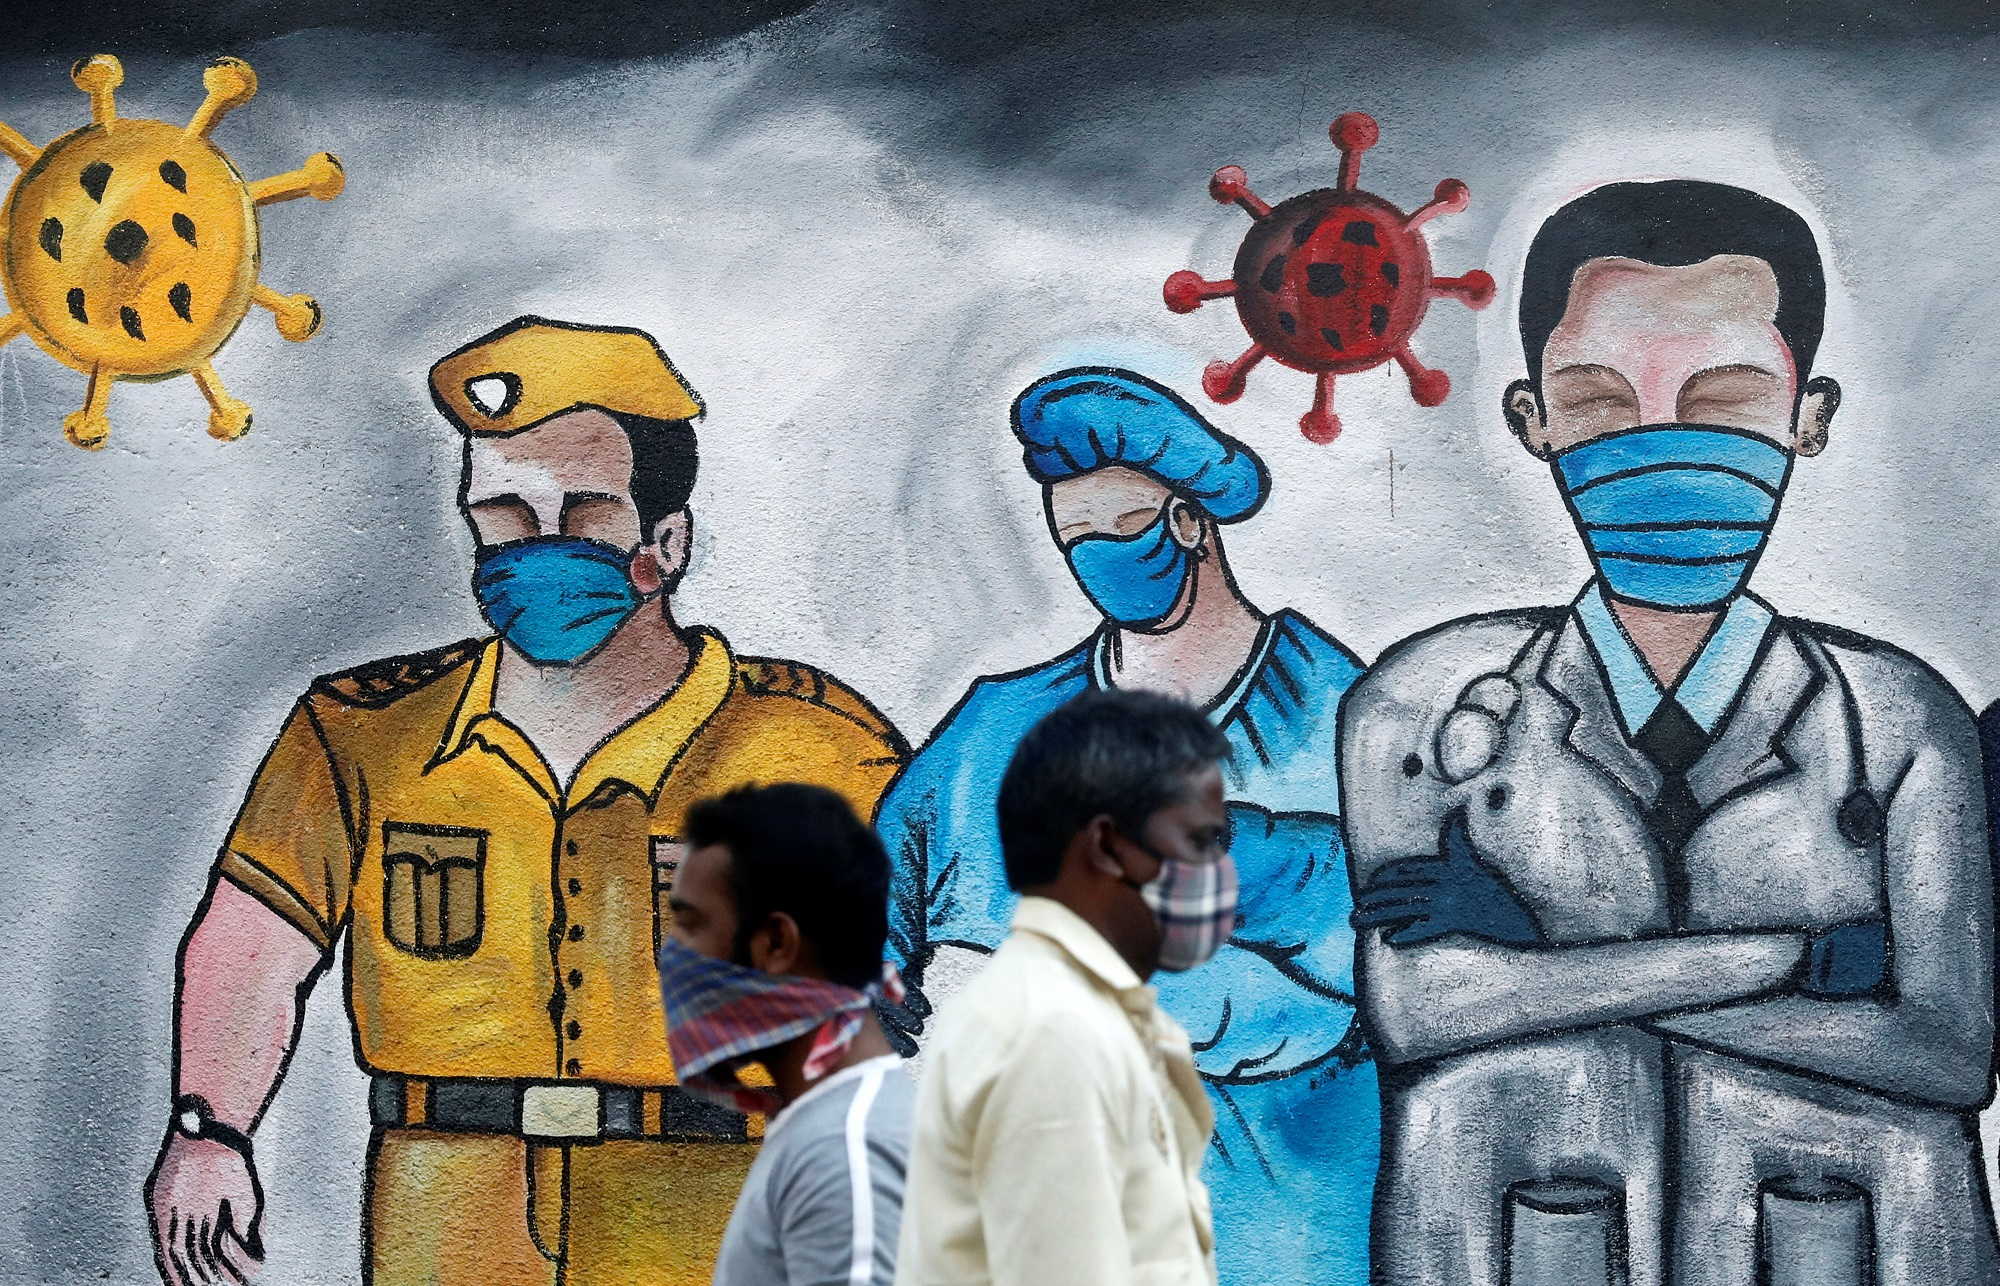 Men walk past a mural of frontline workers amid the spread of the coronavirus disease (COVID-19), in Mumbai on December 21, 2020. (REUTERS)